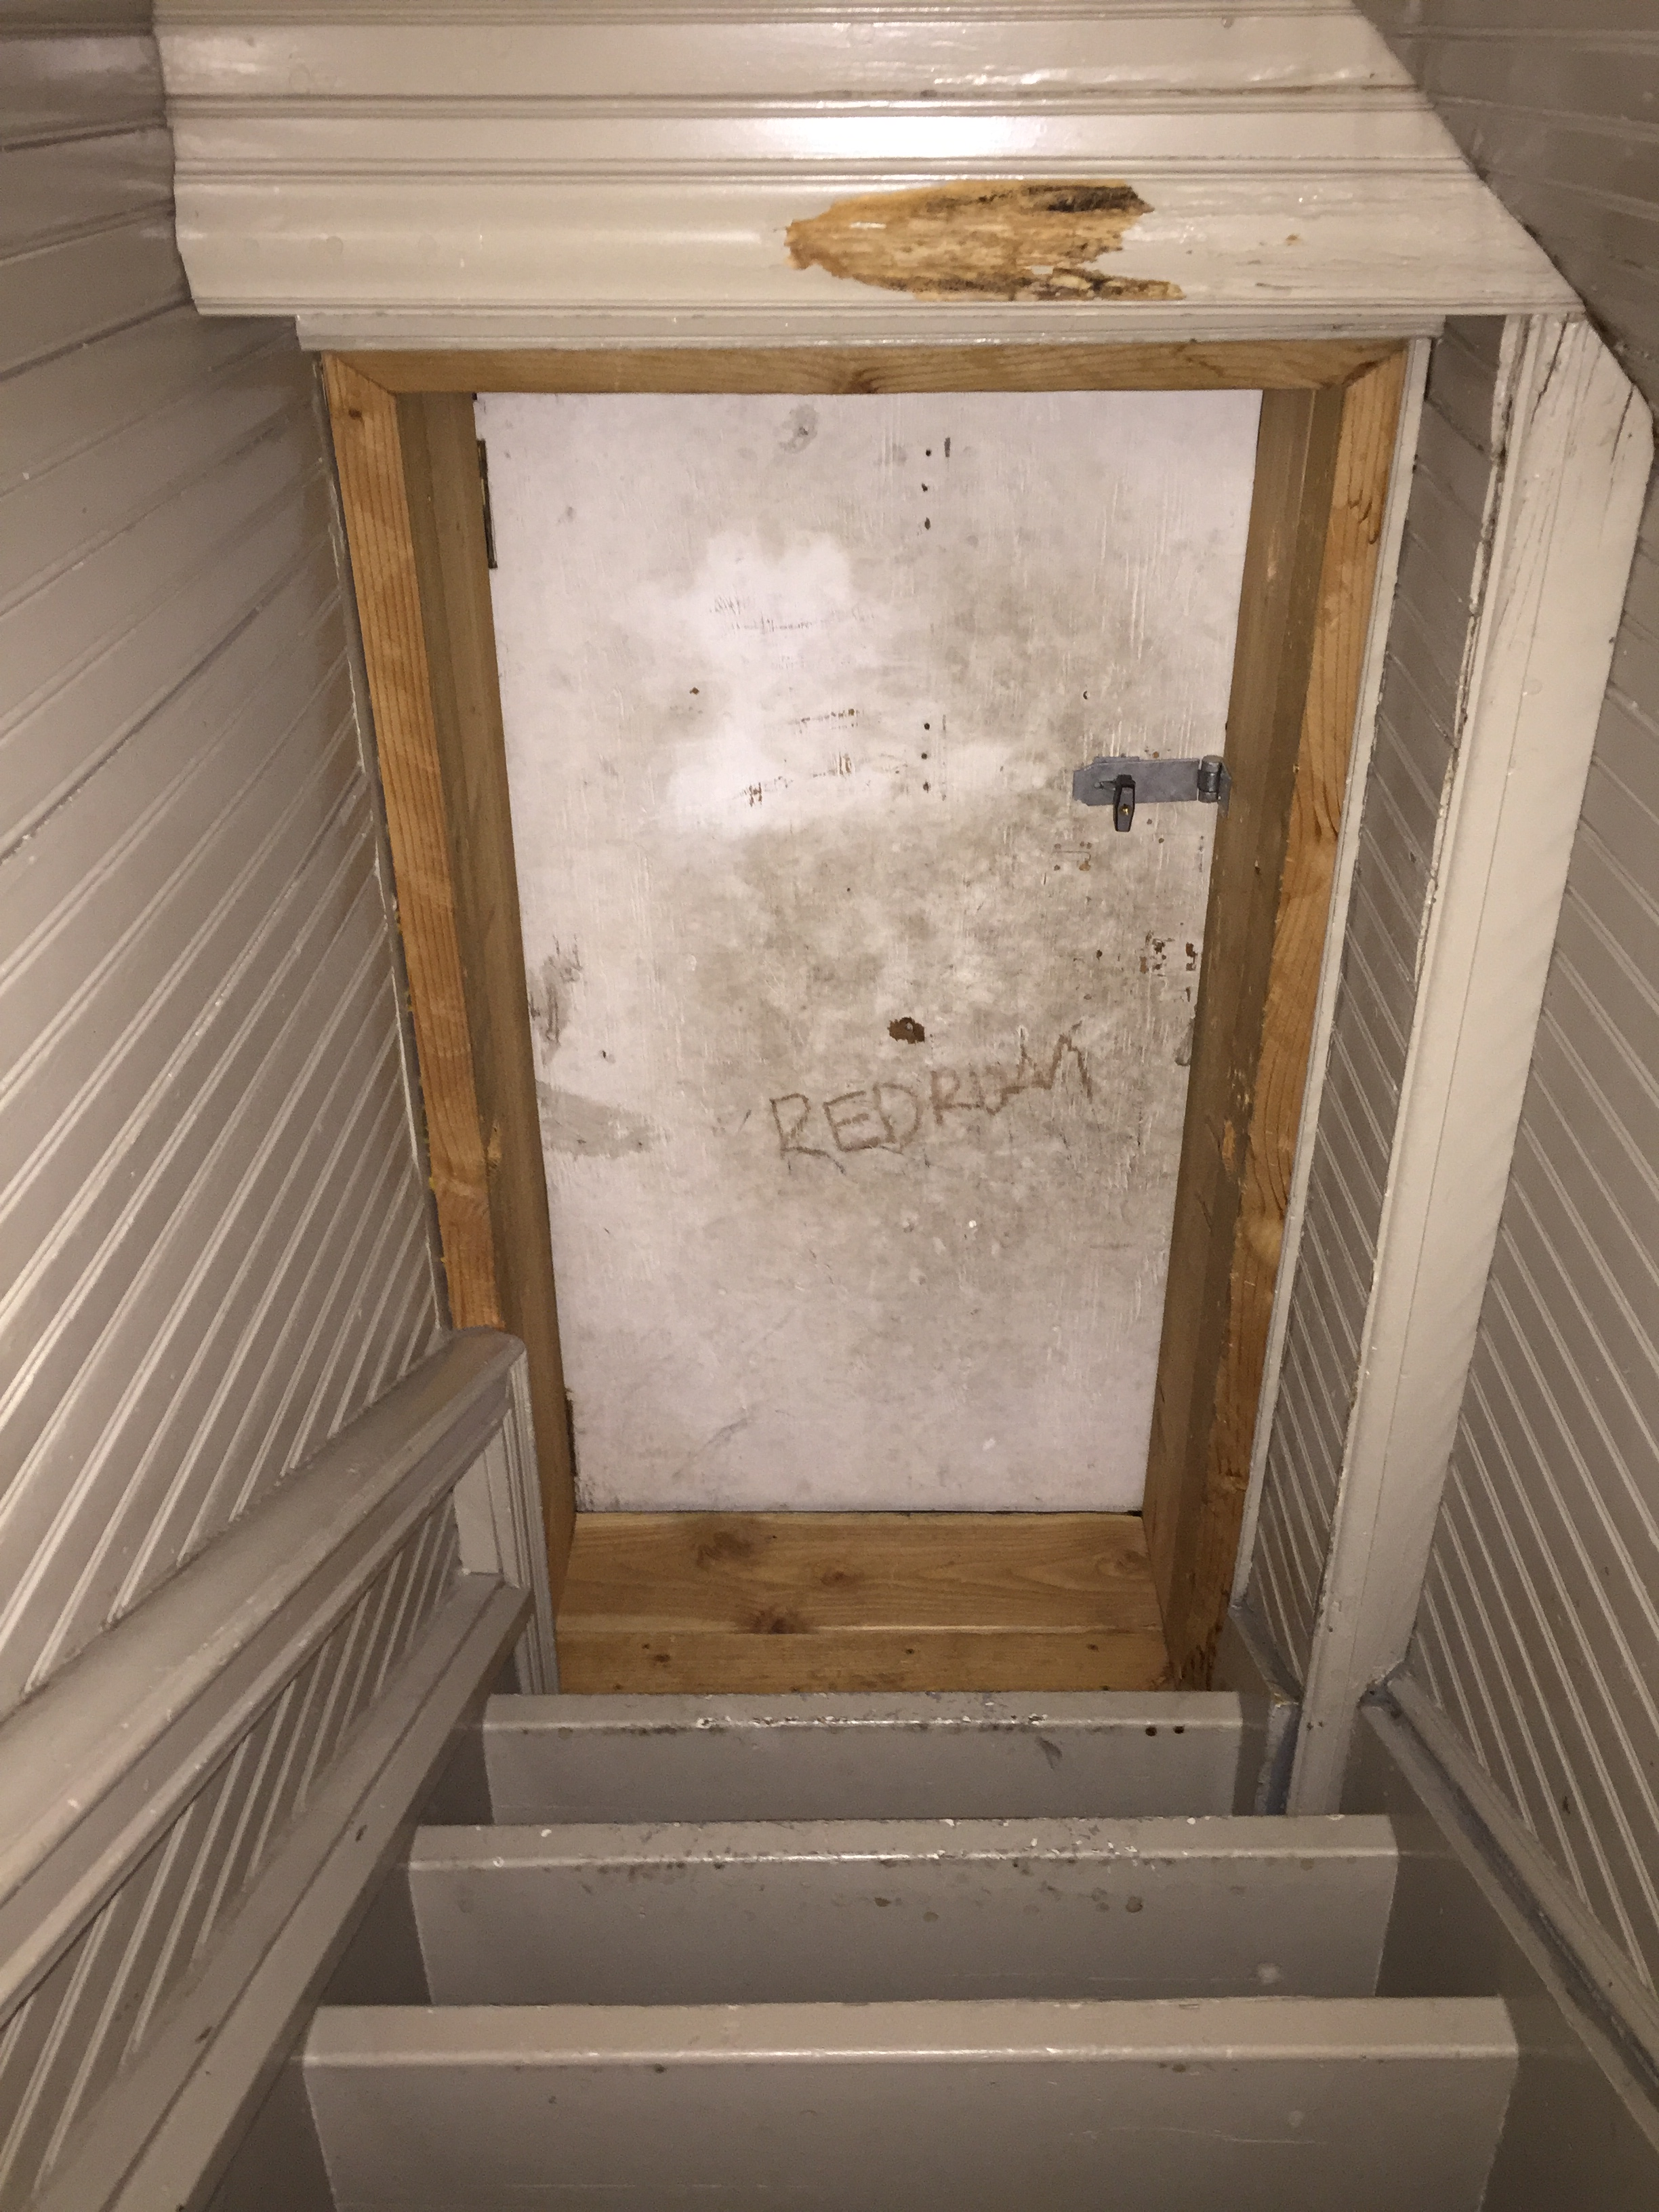 redrum-on-door-to-stanley-hotel-bell-tower & Oh Yeah We Went There\u2026 | THE CAVENDER DIARY